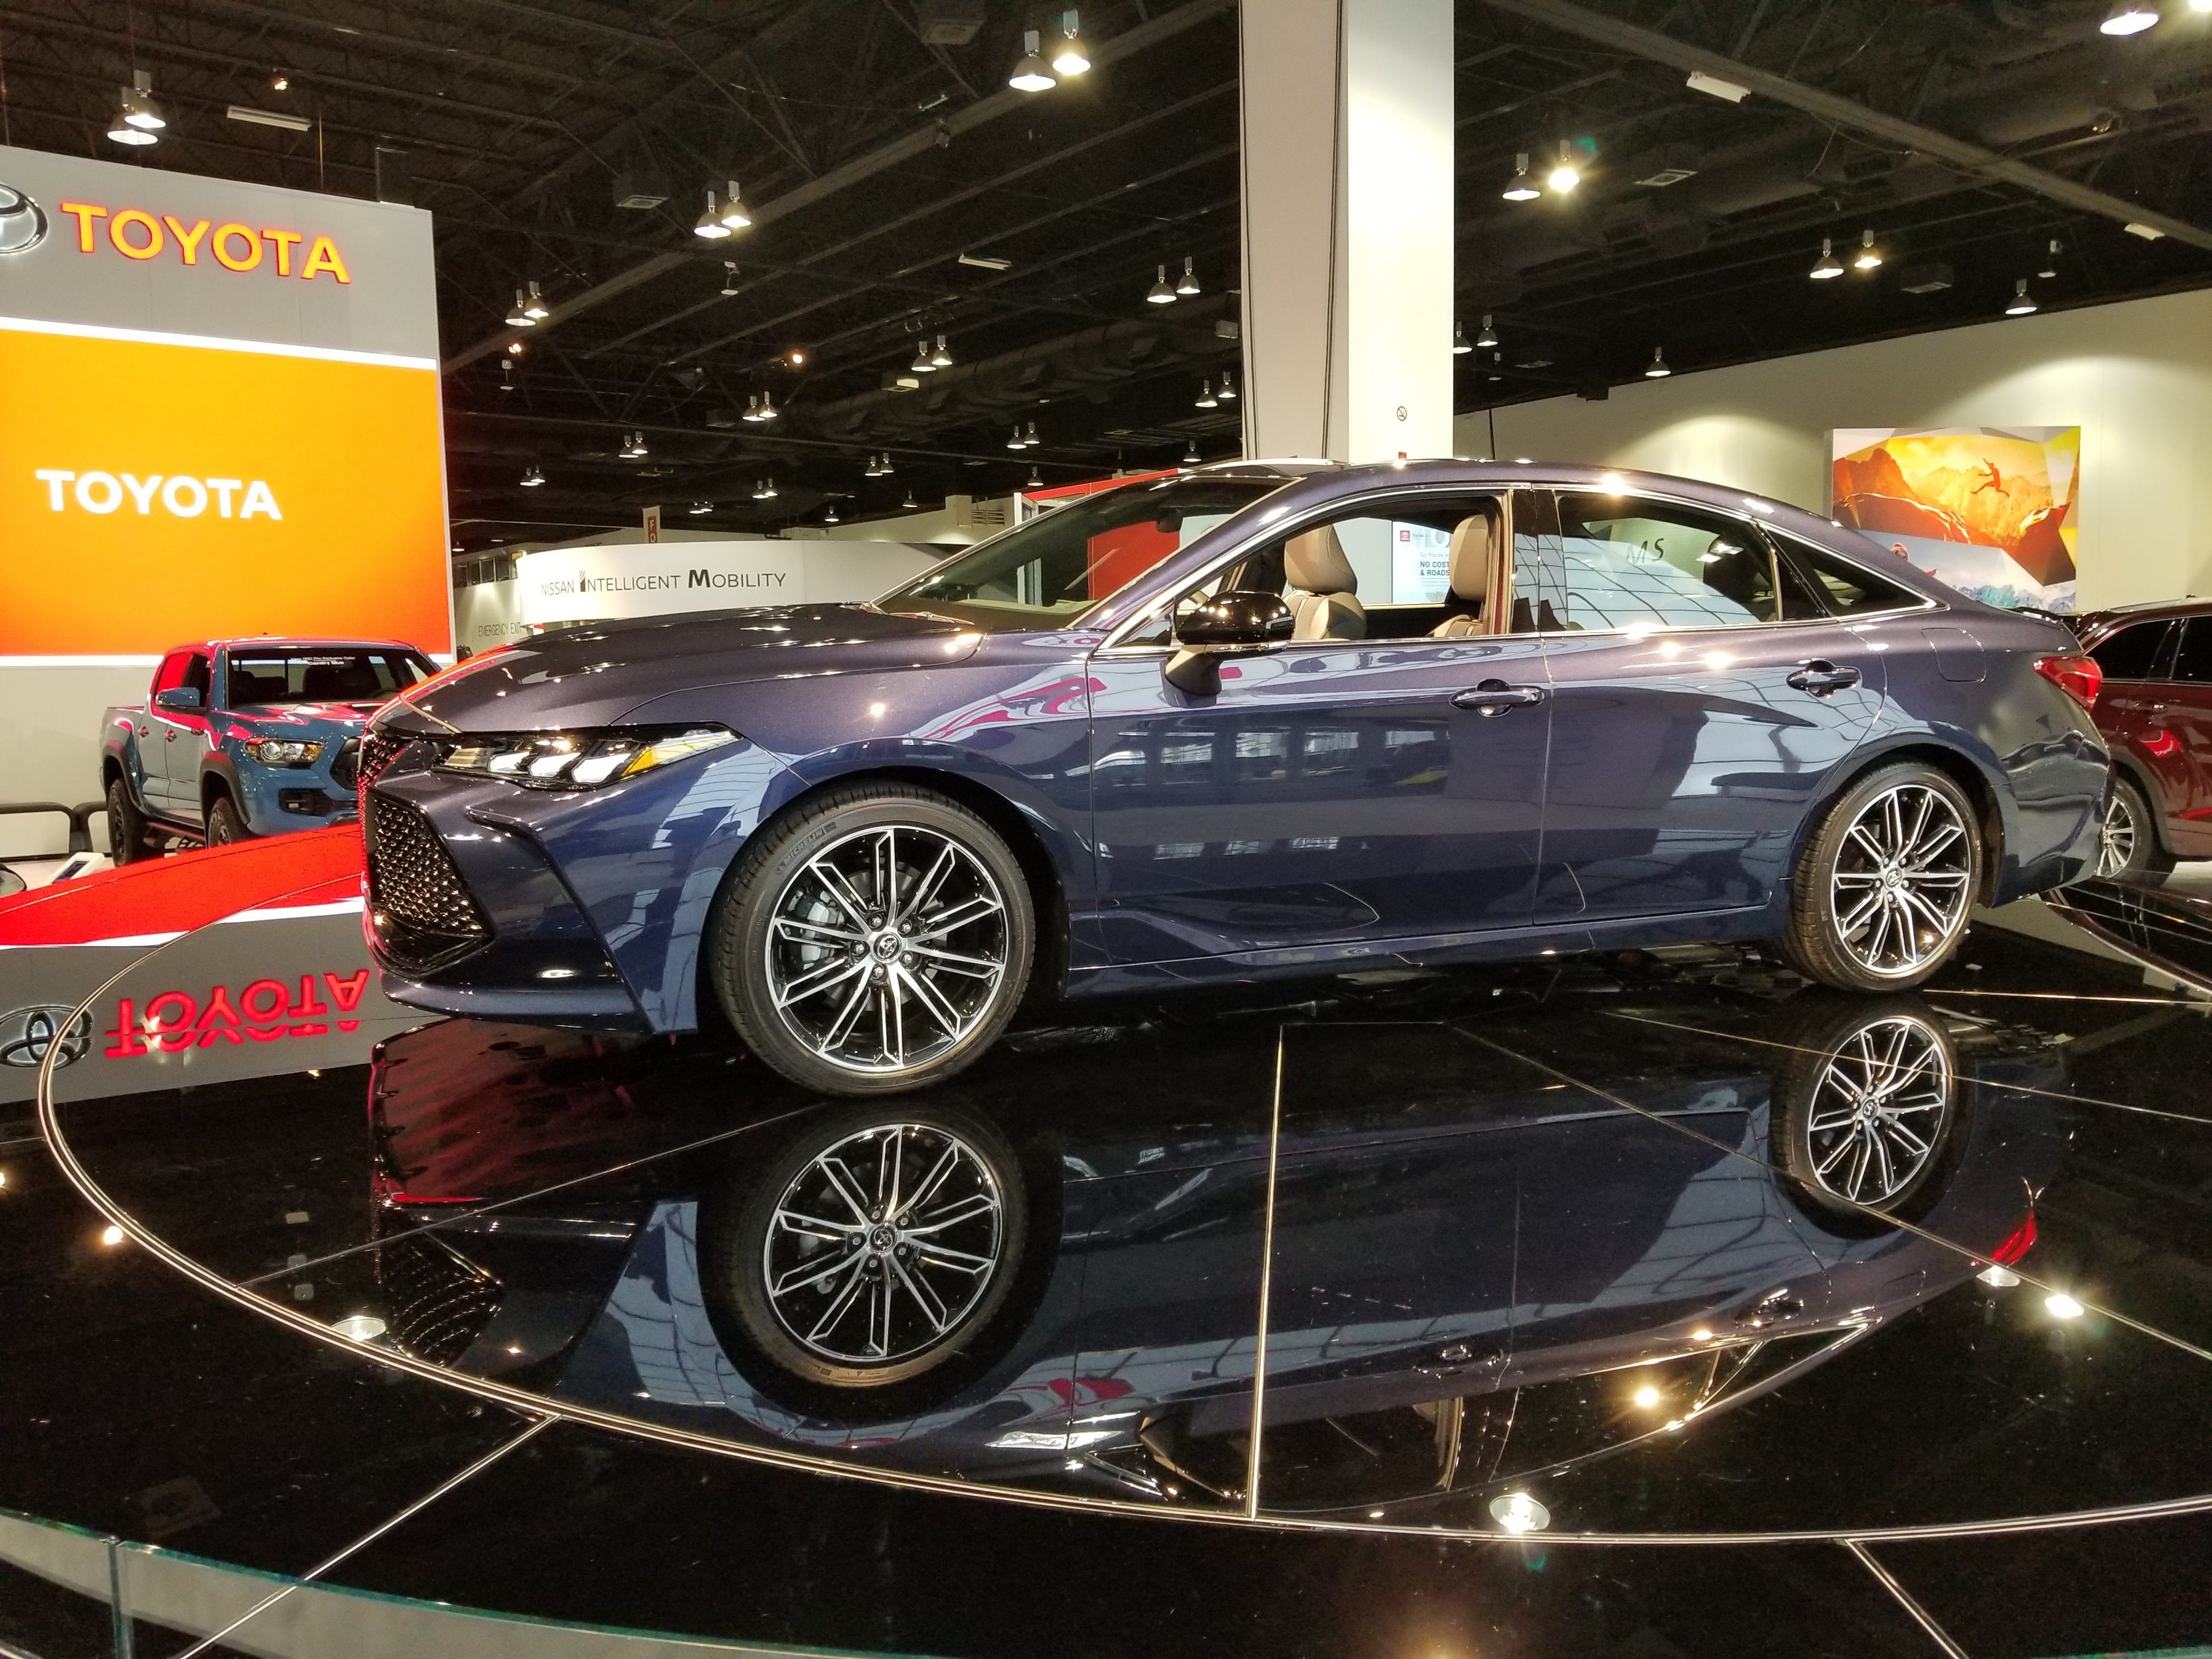 Denver Auto Show Features InVehicle Technology Driverless Report - Major car shows